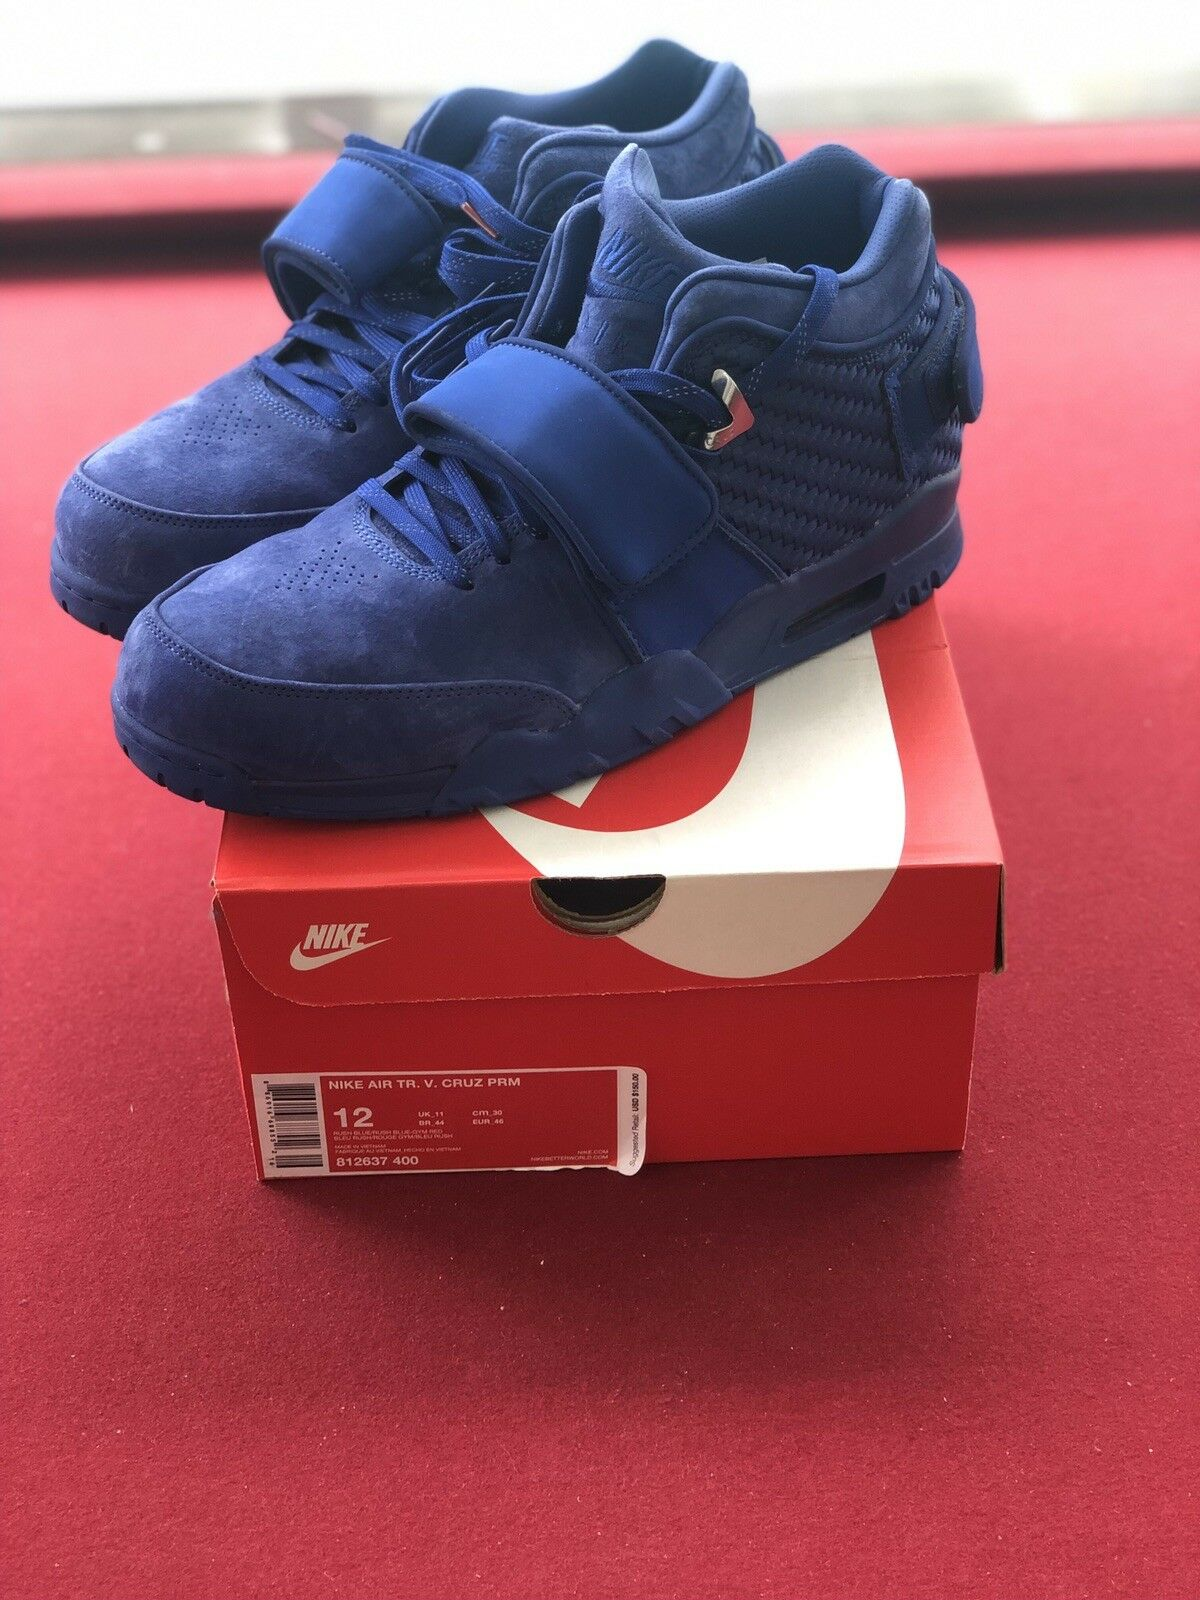 Nike Air Trainer Victor Cruz PRM Premium blueee Gym NY Giants 812637-400 Size 12